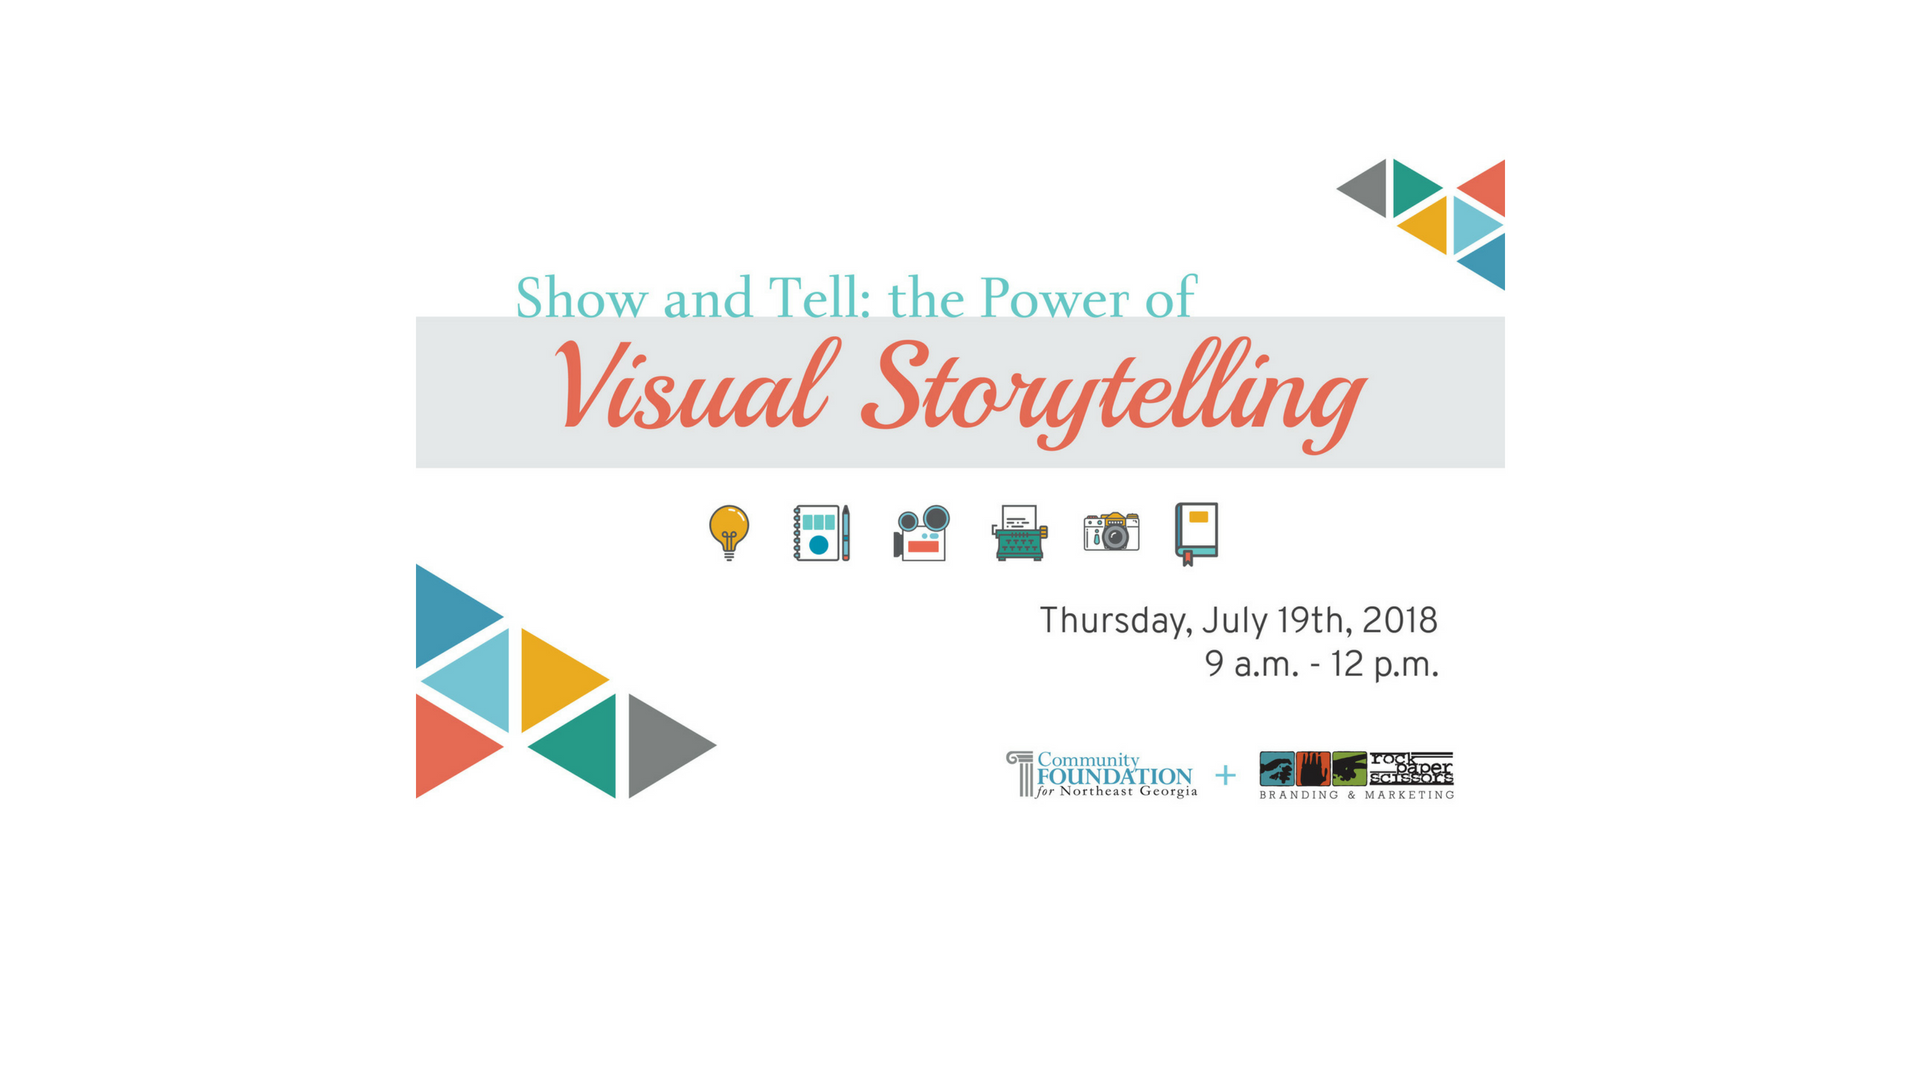 Show and Tell: the Power of Visual Storytelling